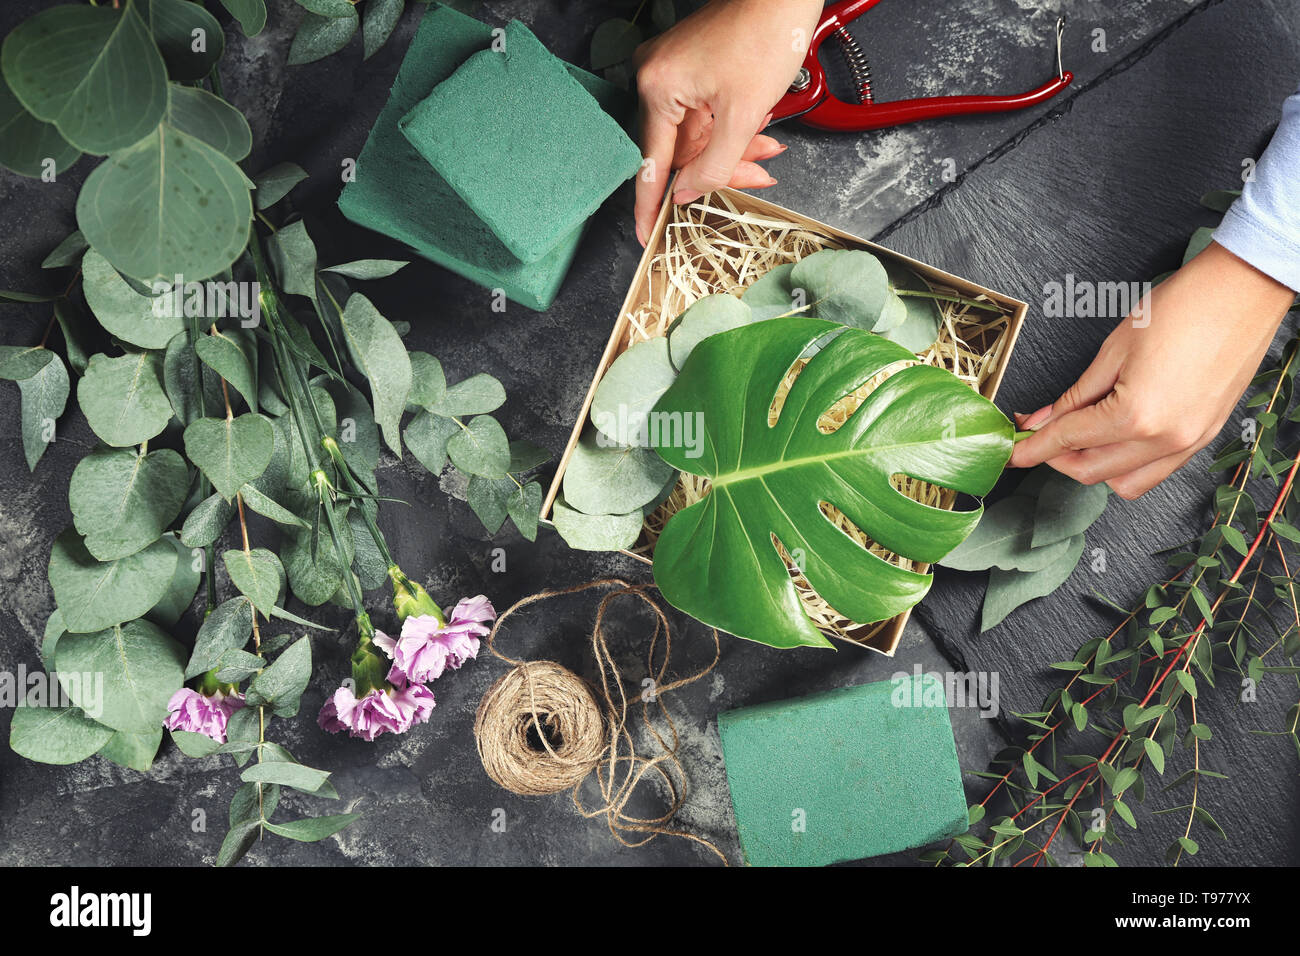 Florist preparing gift box with green branches on grey table - Stock Image